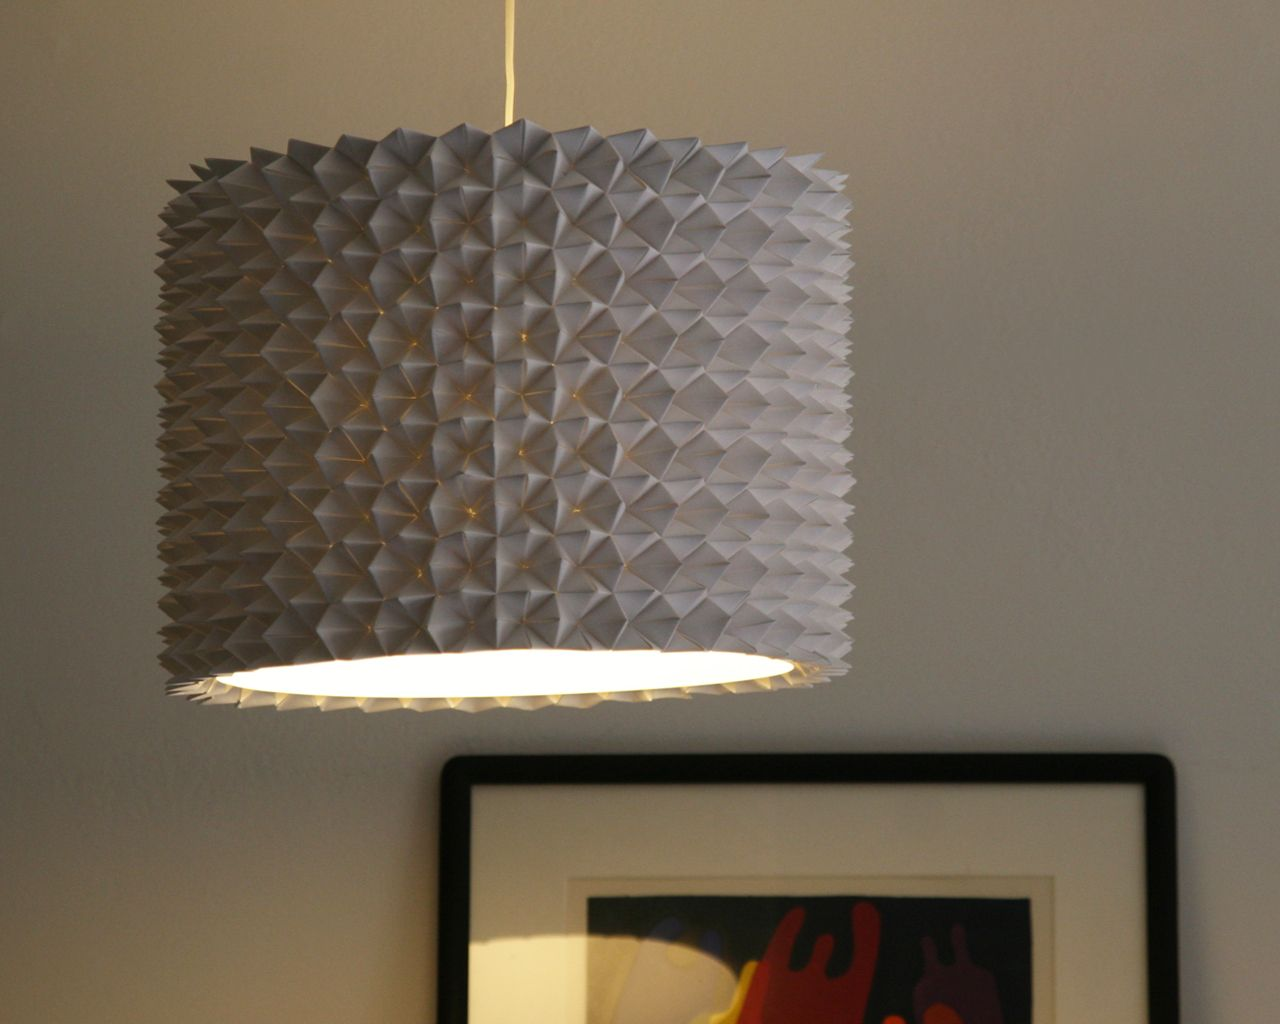 Delightful Faceted Pendant Lights U2013 The Large Drum Shade